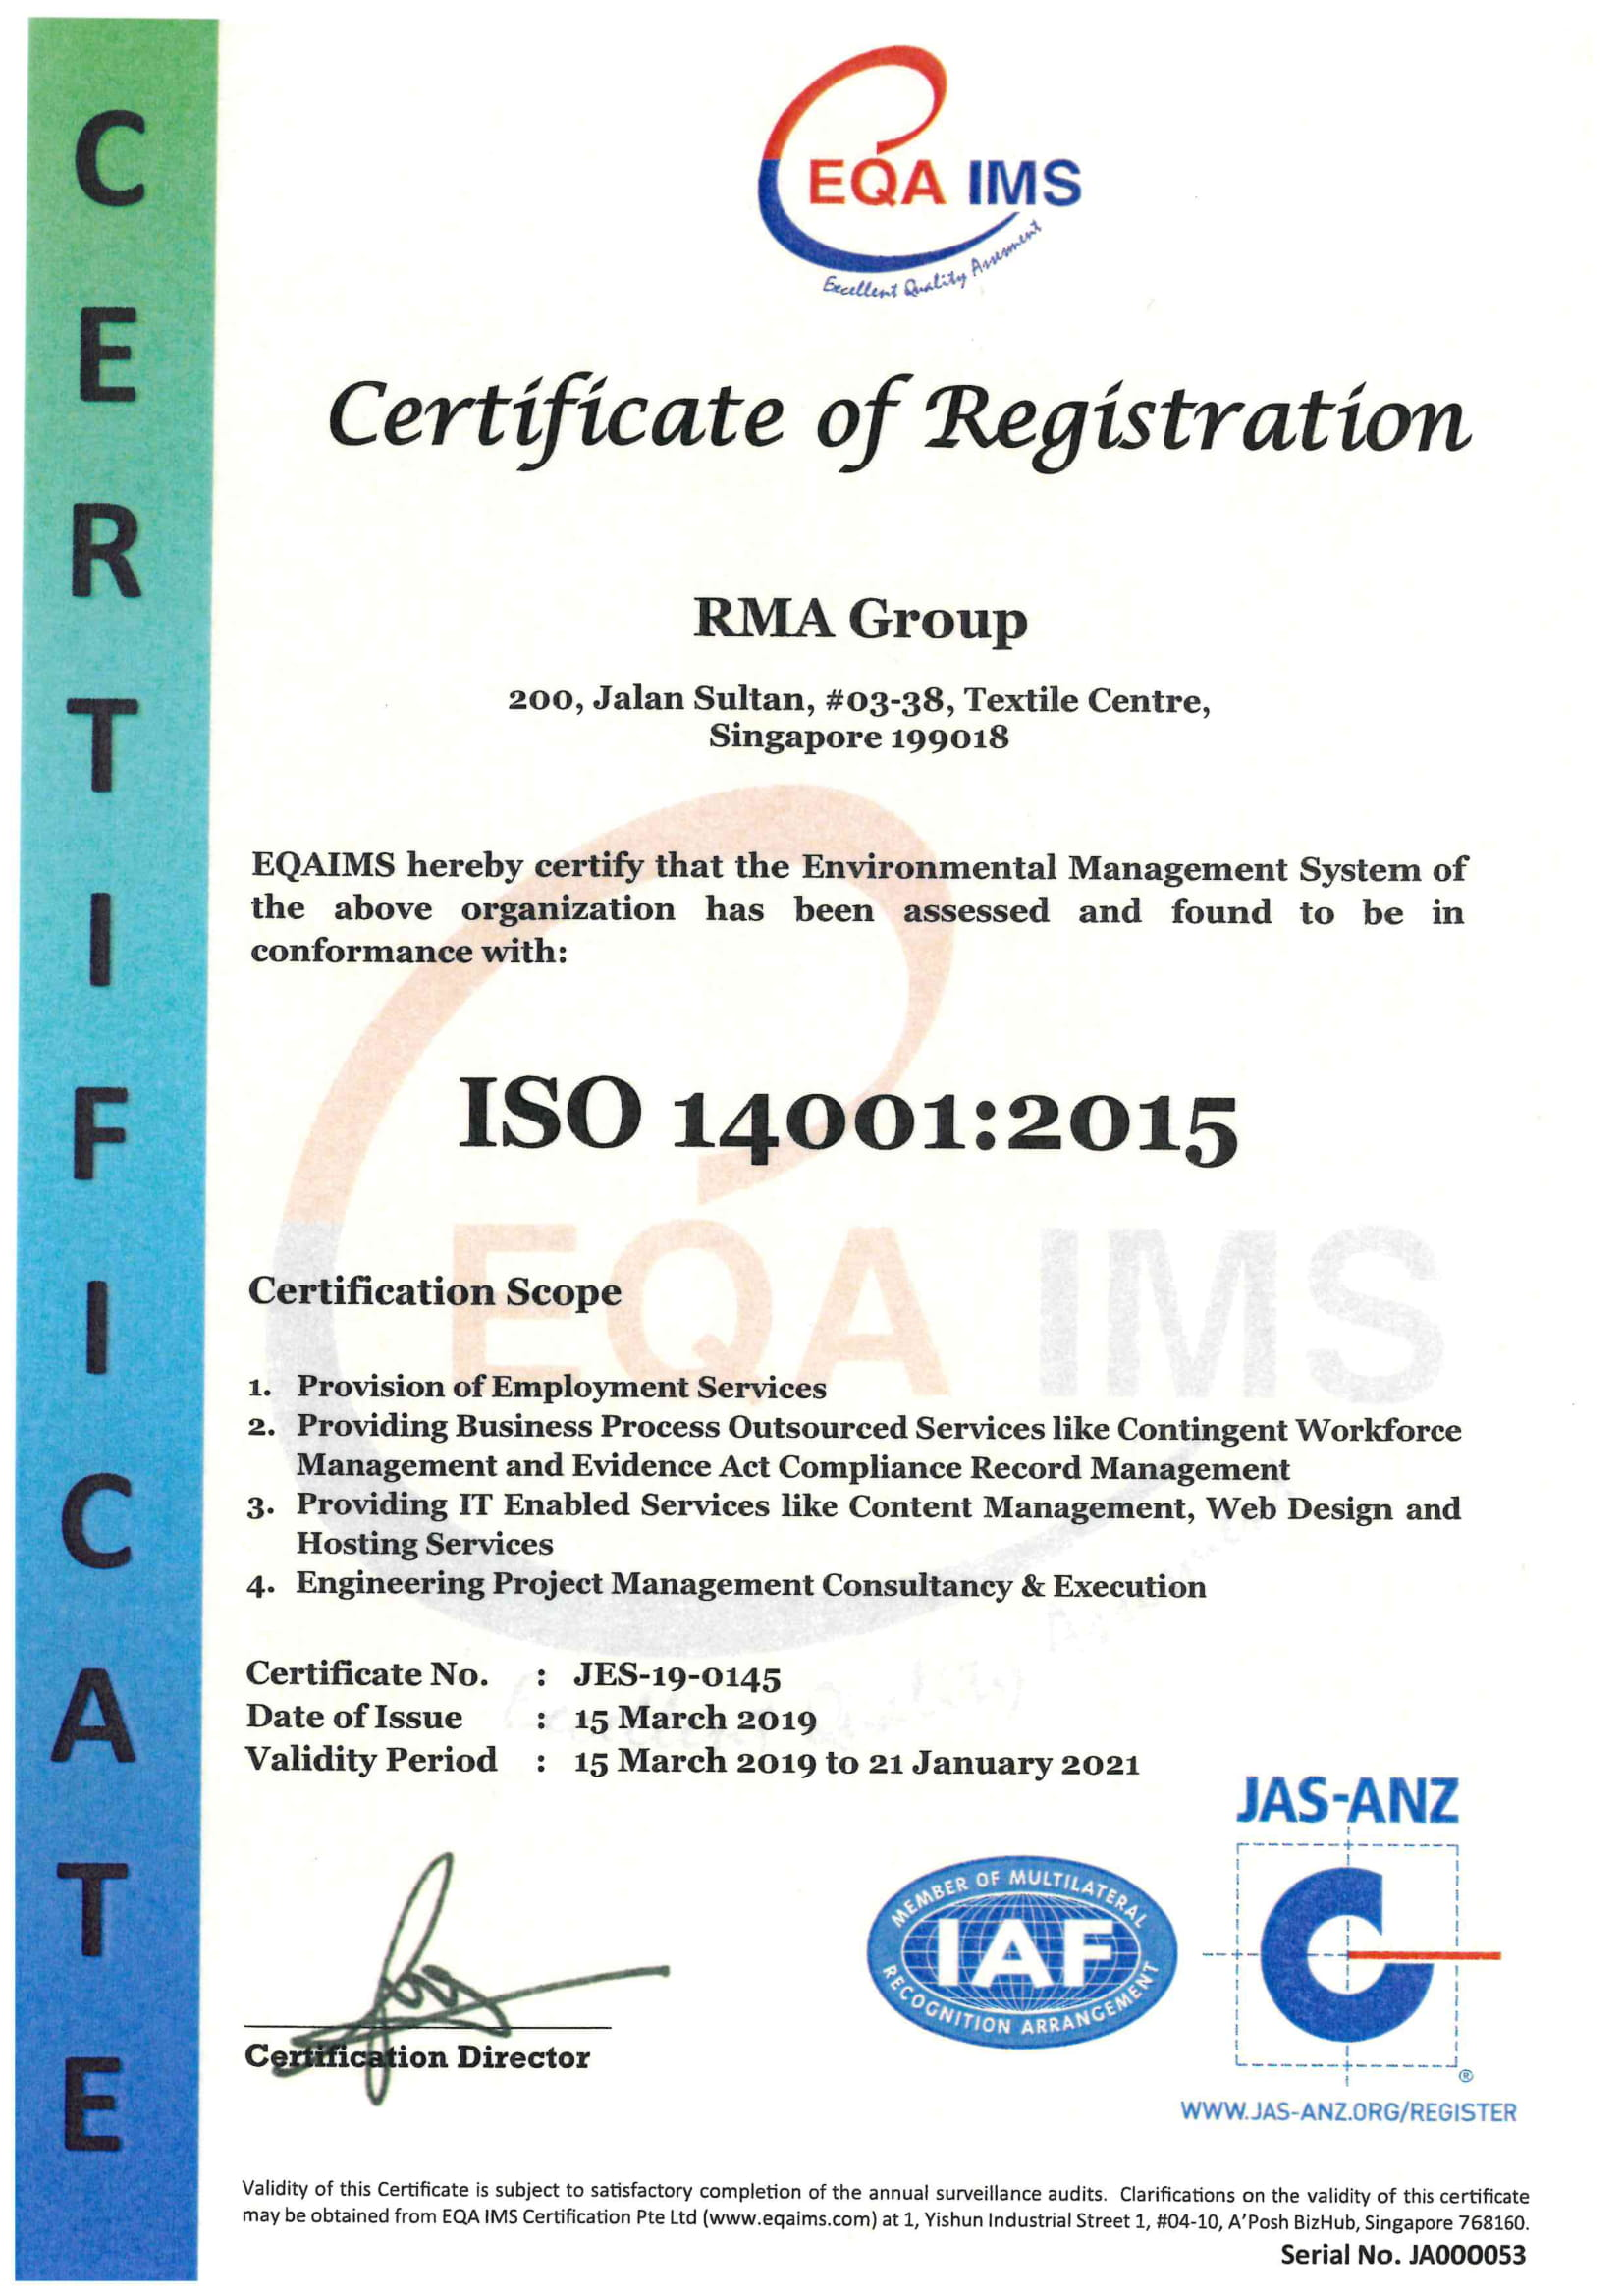 ISO 14001:2015 Certificate for Environmental Management System.